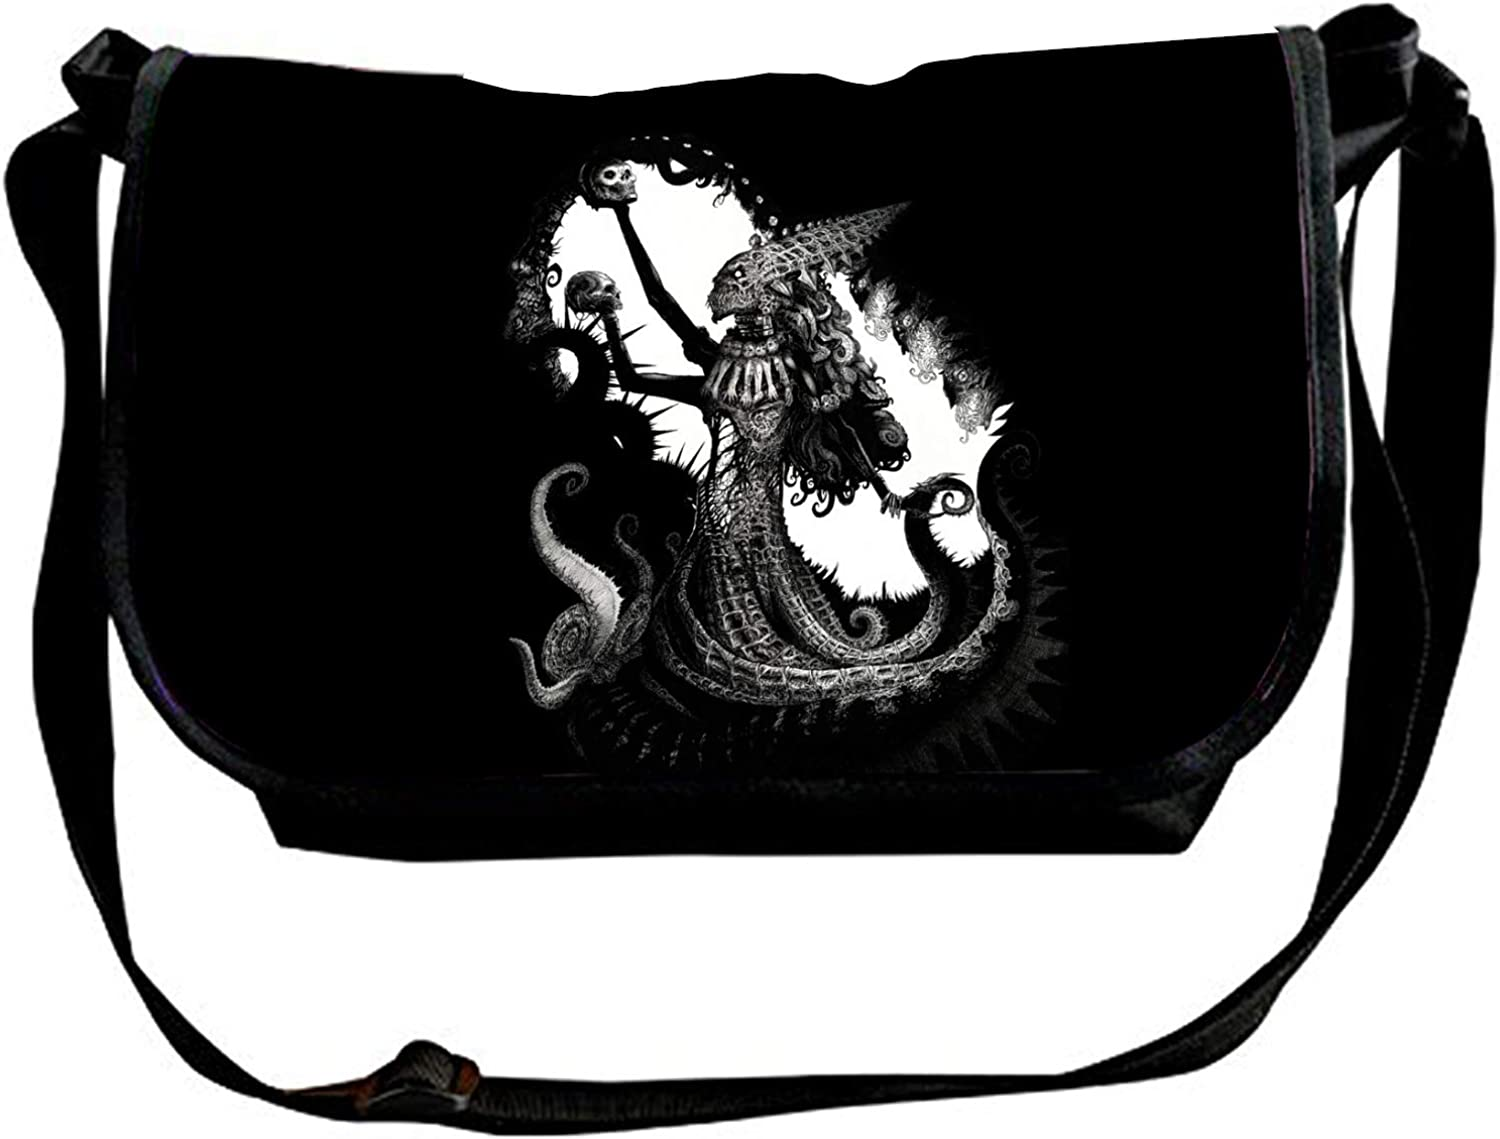 Dark Creepy Custom High-grade Nylon Single/ Shoulder Slant/ Sling/ Bag Cross-body Bag